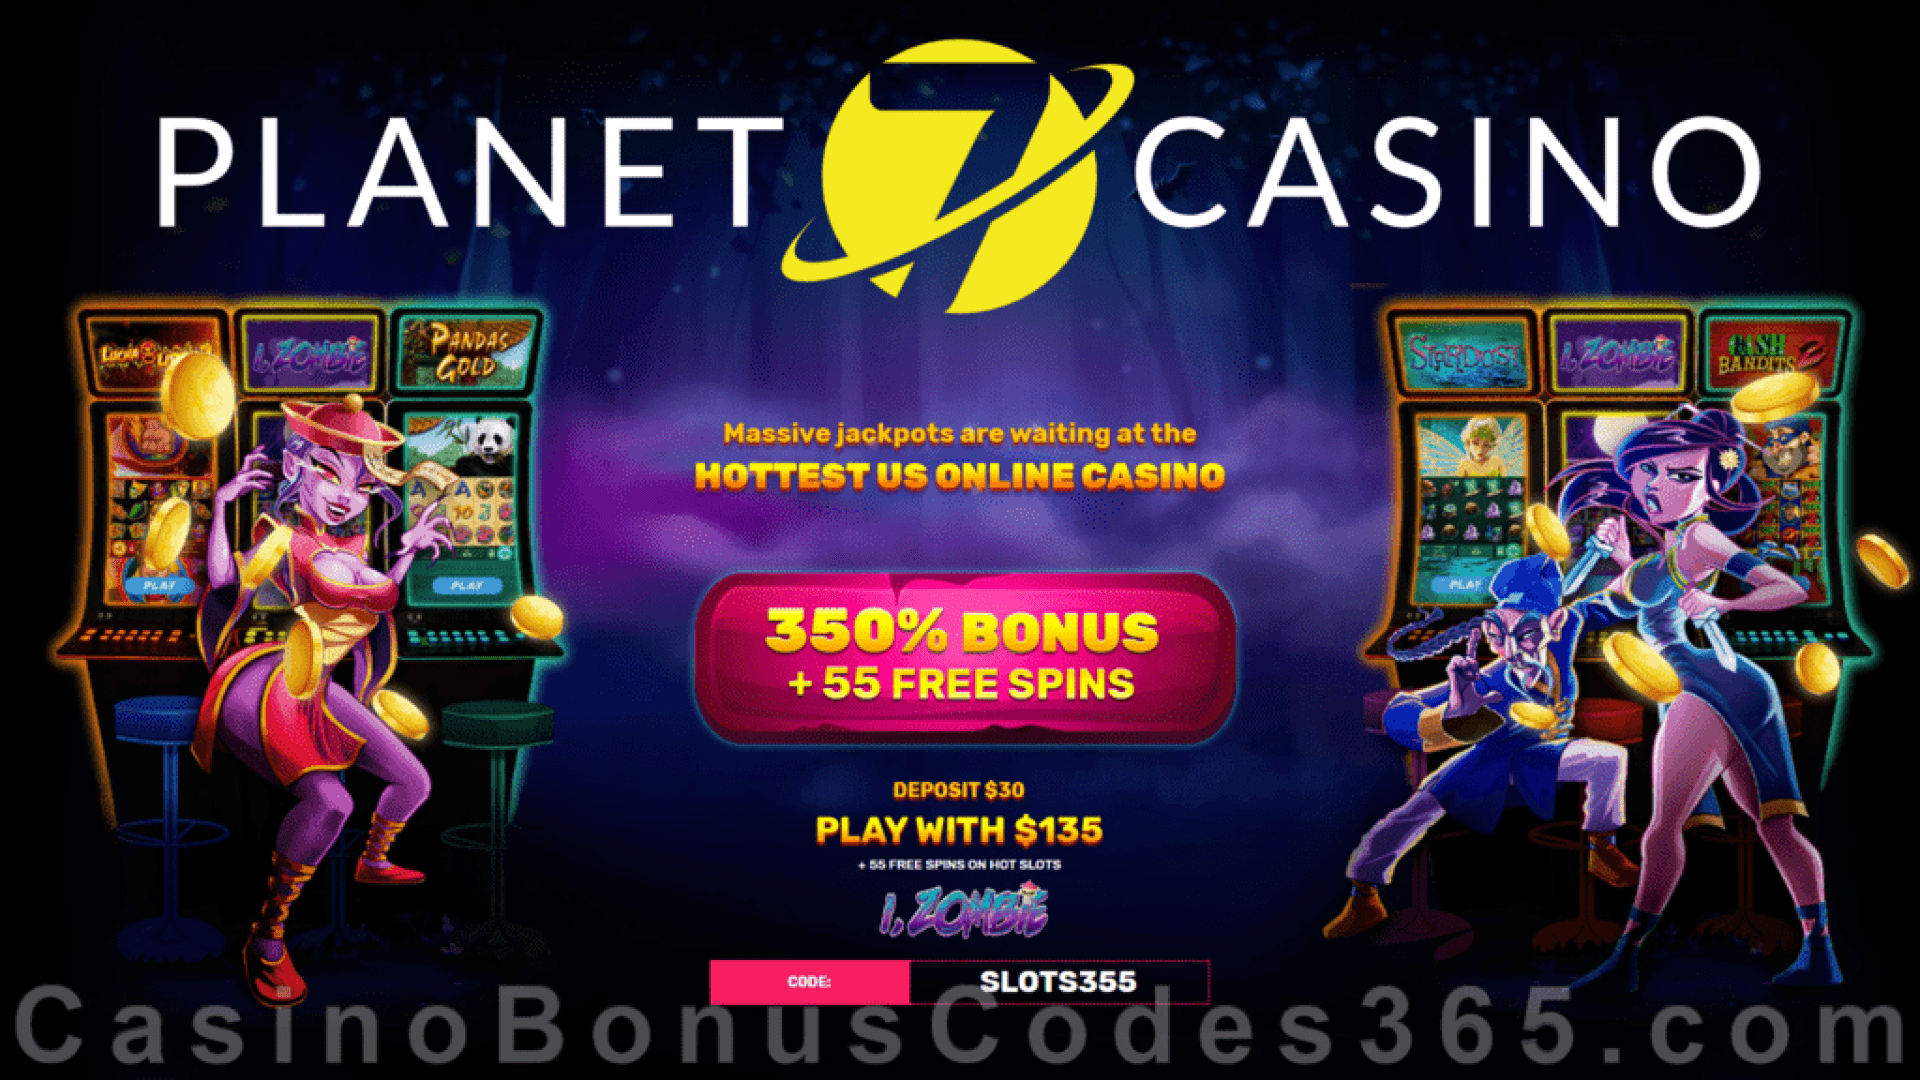 Planet 7 Casino 350% Match Bonus Plus 55 FREE RTG i Zombie Spins Welcome Deal